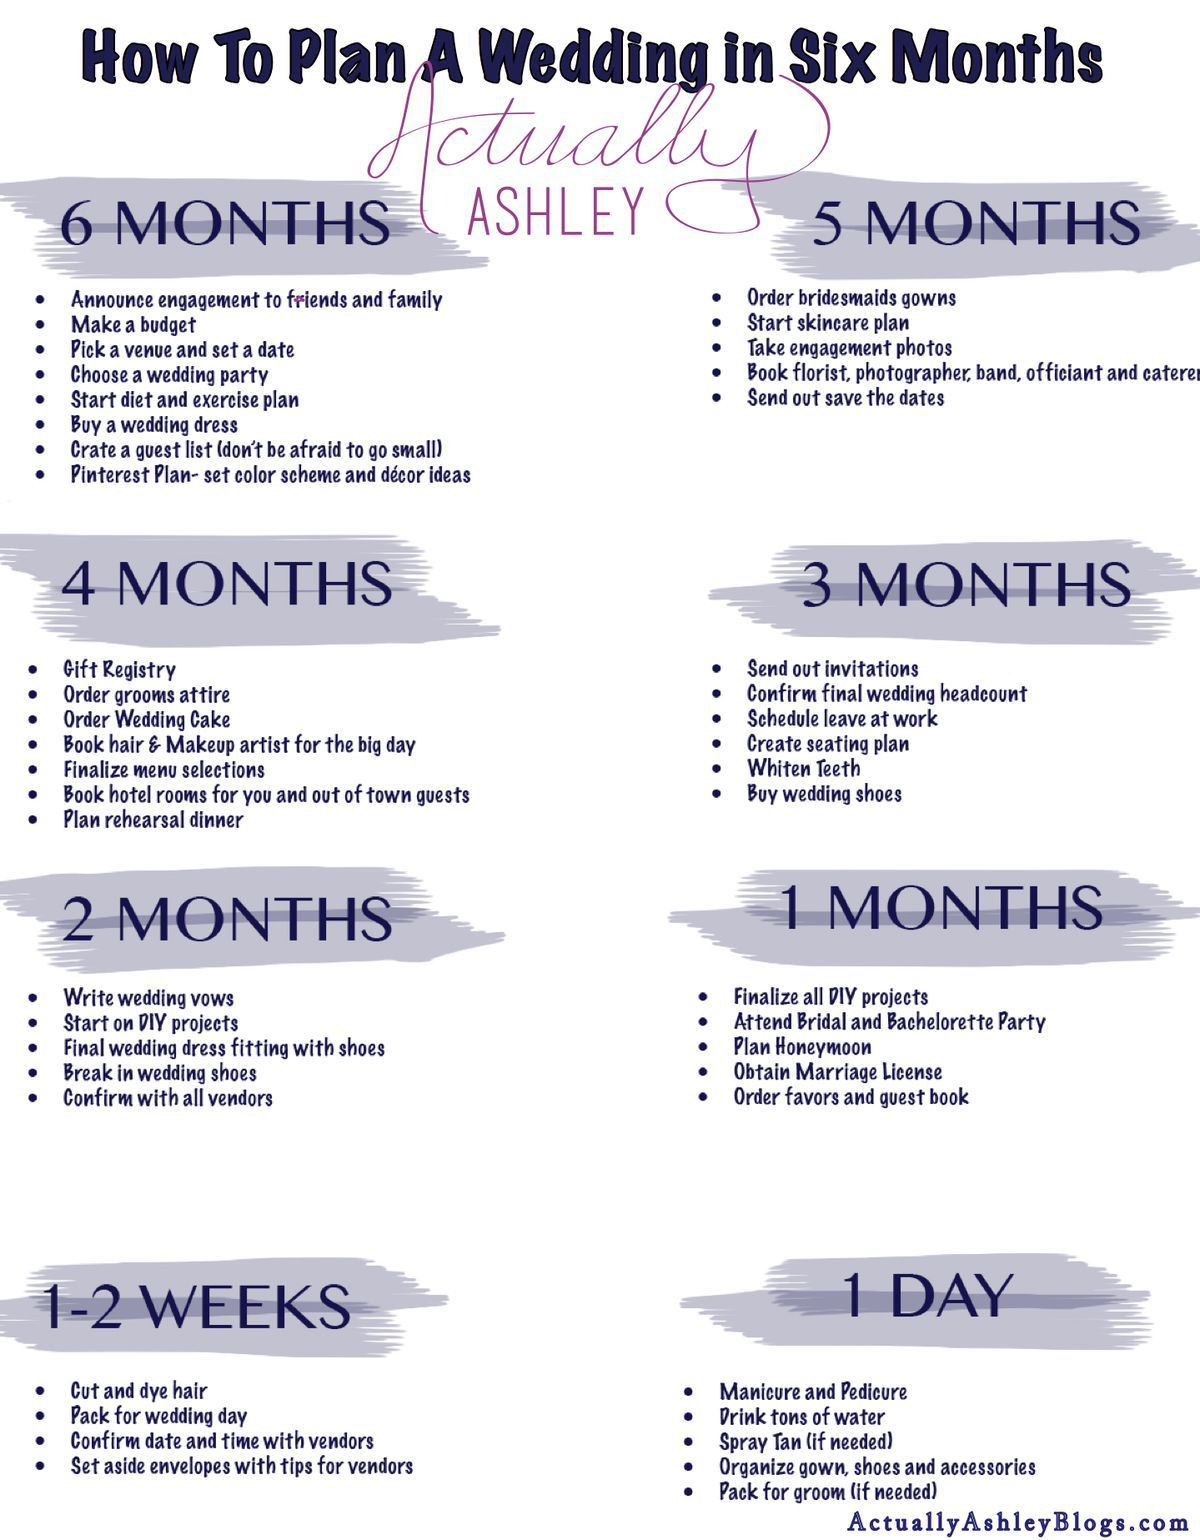 Wedding planning timeline best photos timeline nice and wedding nice wedding planning timeline best photos junglespirit Image collections